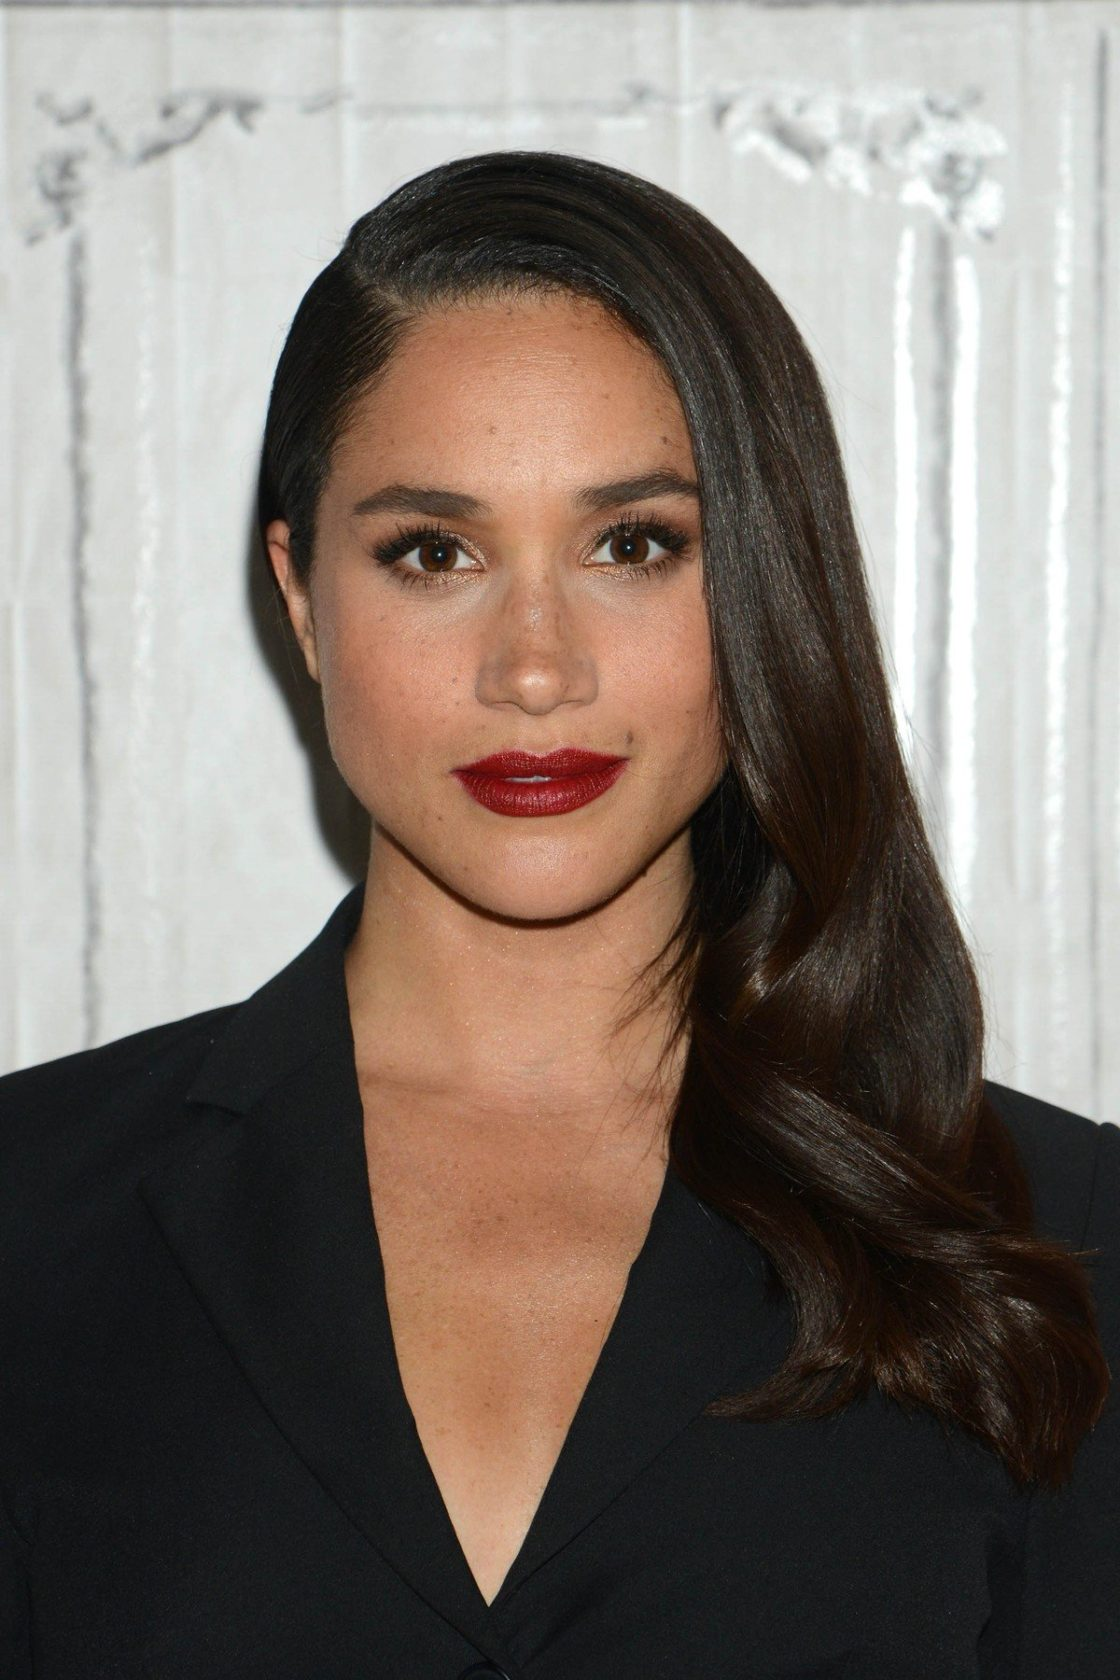 New York, NY - 3/17/2016 - Meghan Markle Discusses her role in the Very Popular 'Suits' at AOL. -PICTURED: Meghan Markle -, Image: 278369020, License: Rights-managed, Restrictions: , Model Release: no, Credit line: Profimedia, INSTAR Images